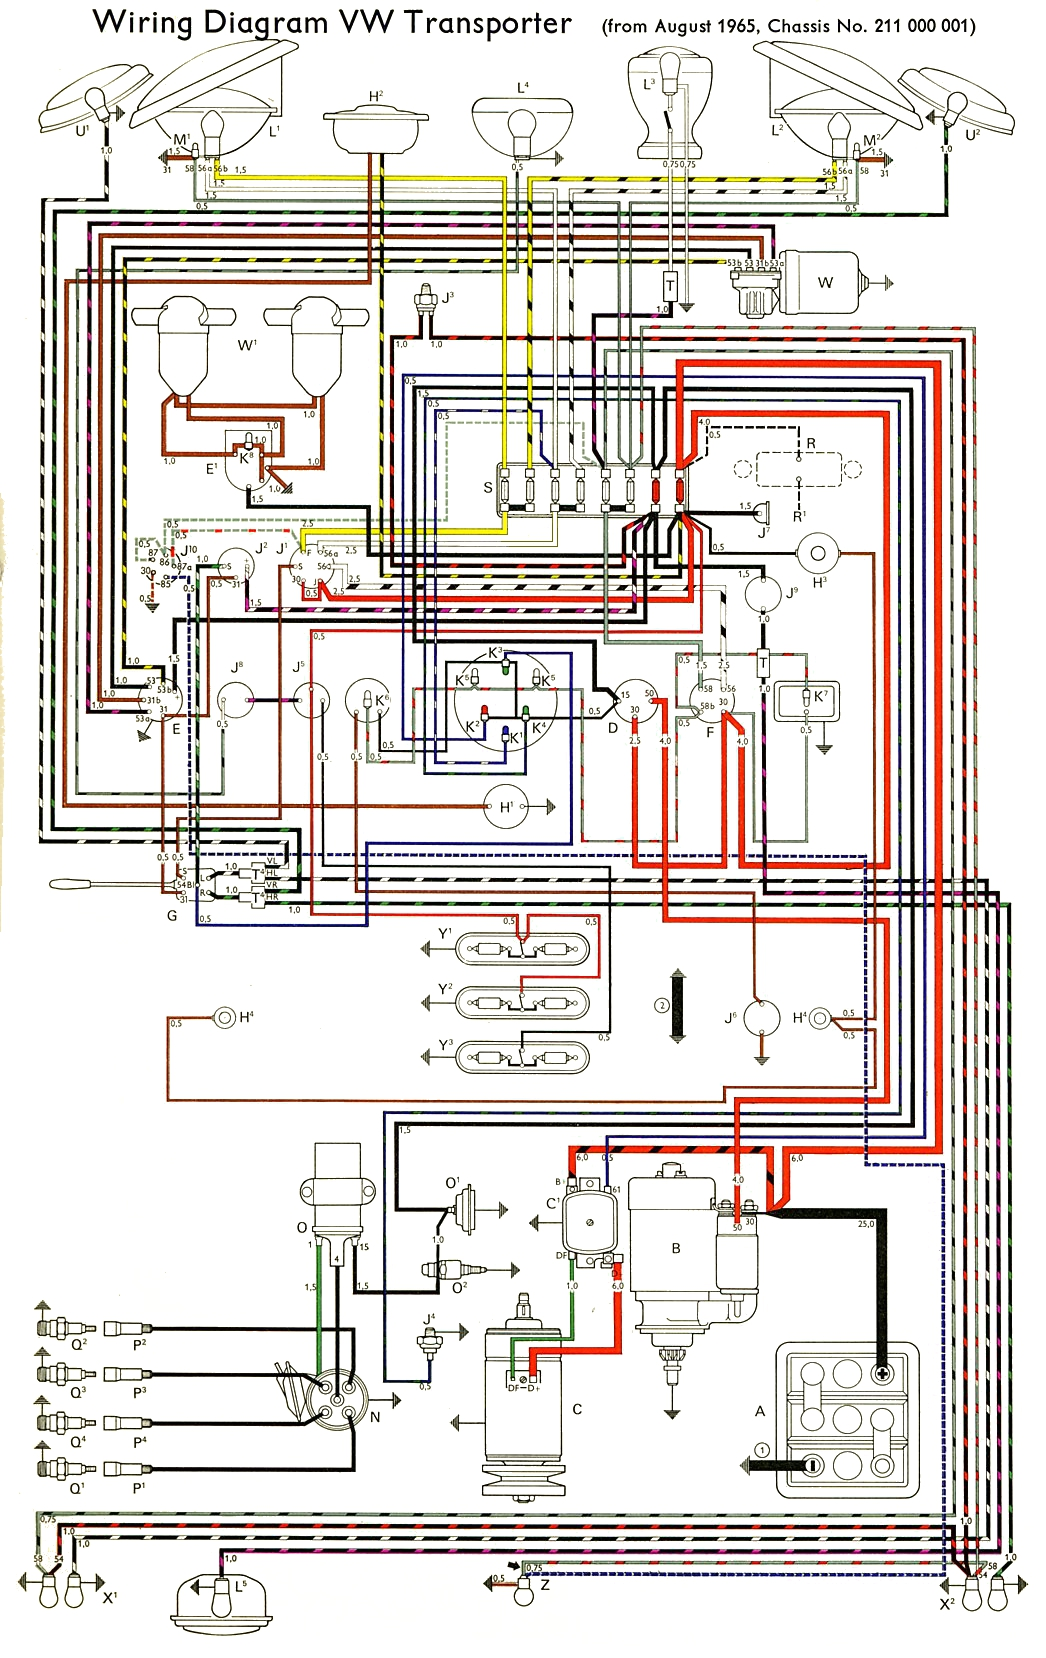 bus_66 thesamba com type 2 wiring diagrams vw t5 wiring diagram at crackthecode.co